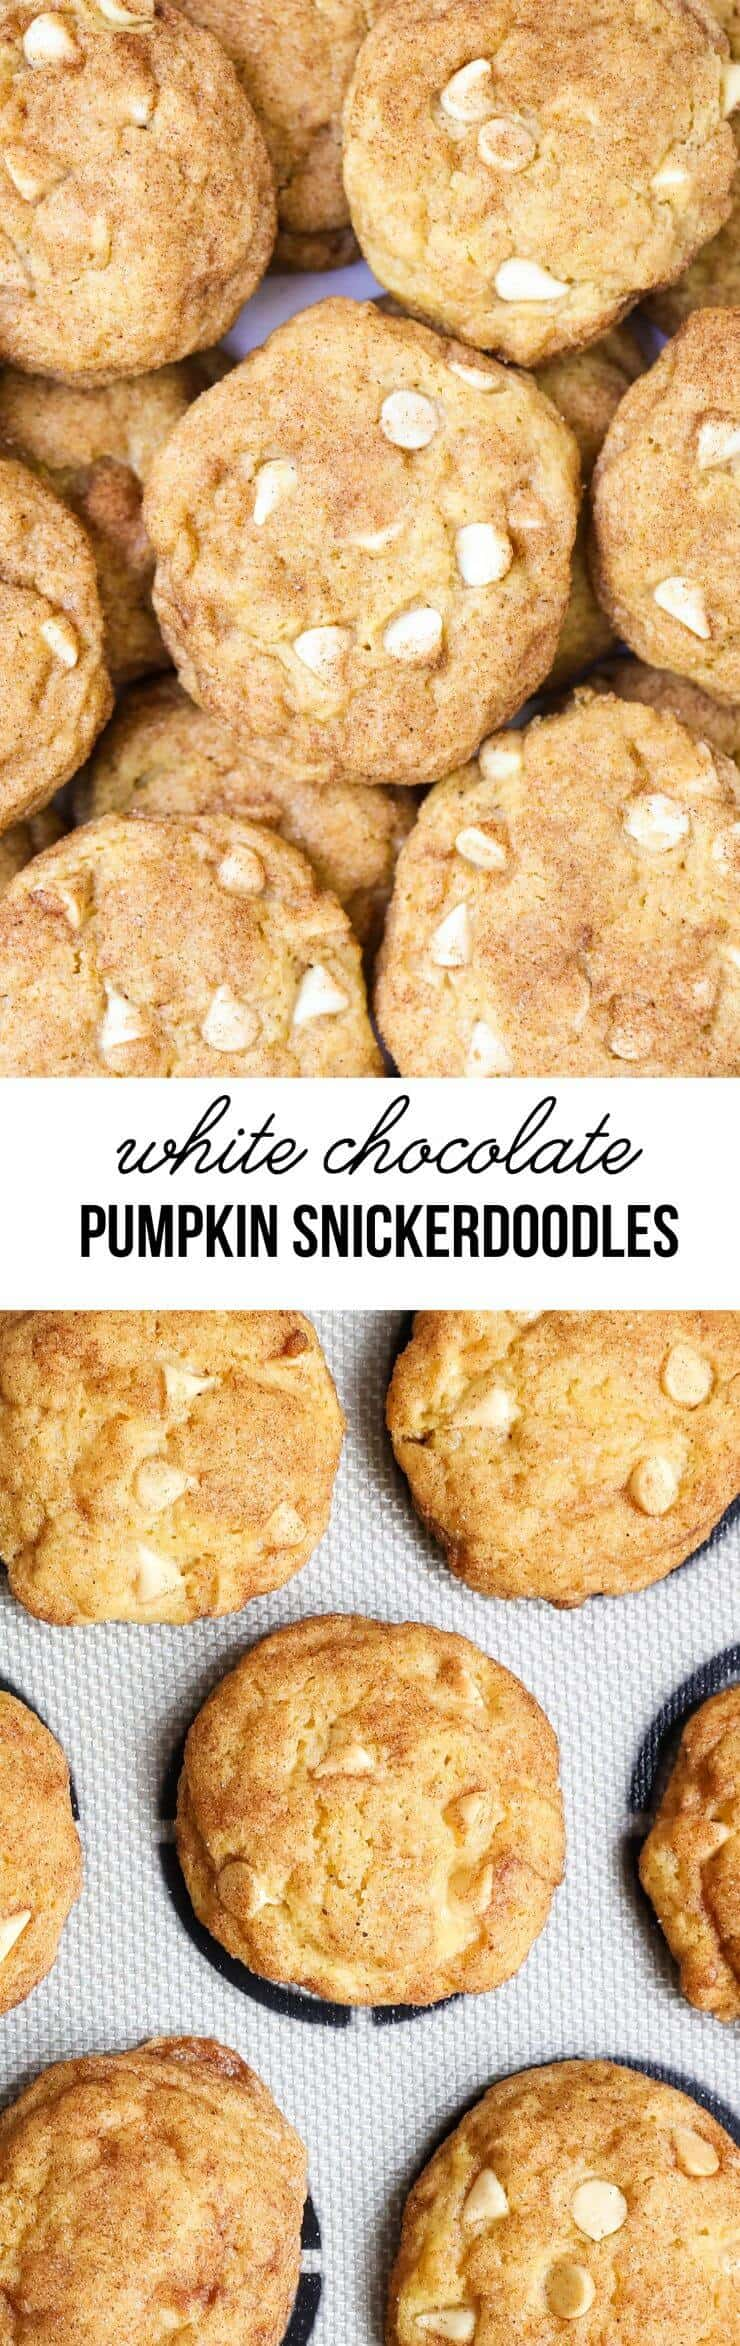 Pumpkin snickerdoodles with white chocolate chips -super soft and filled with all the best fall flavors!